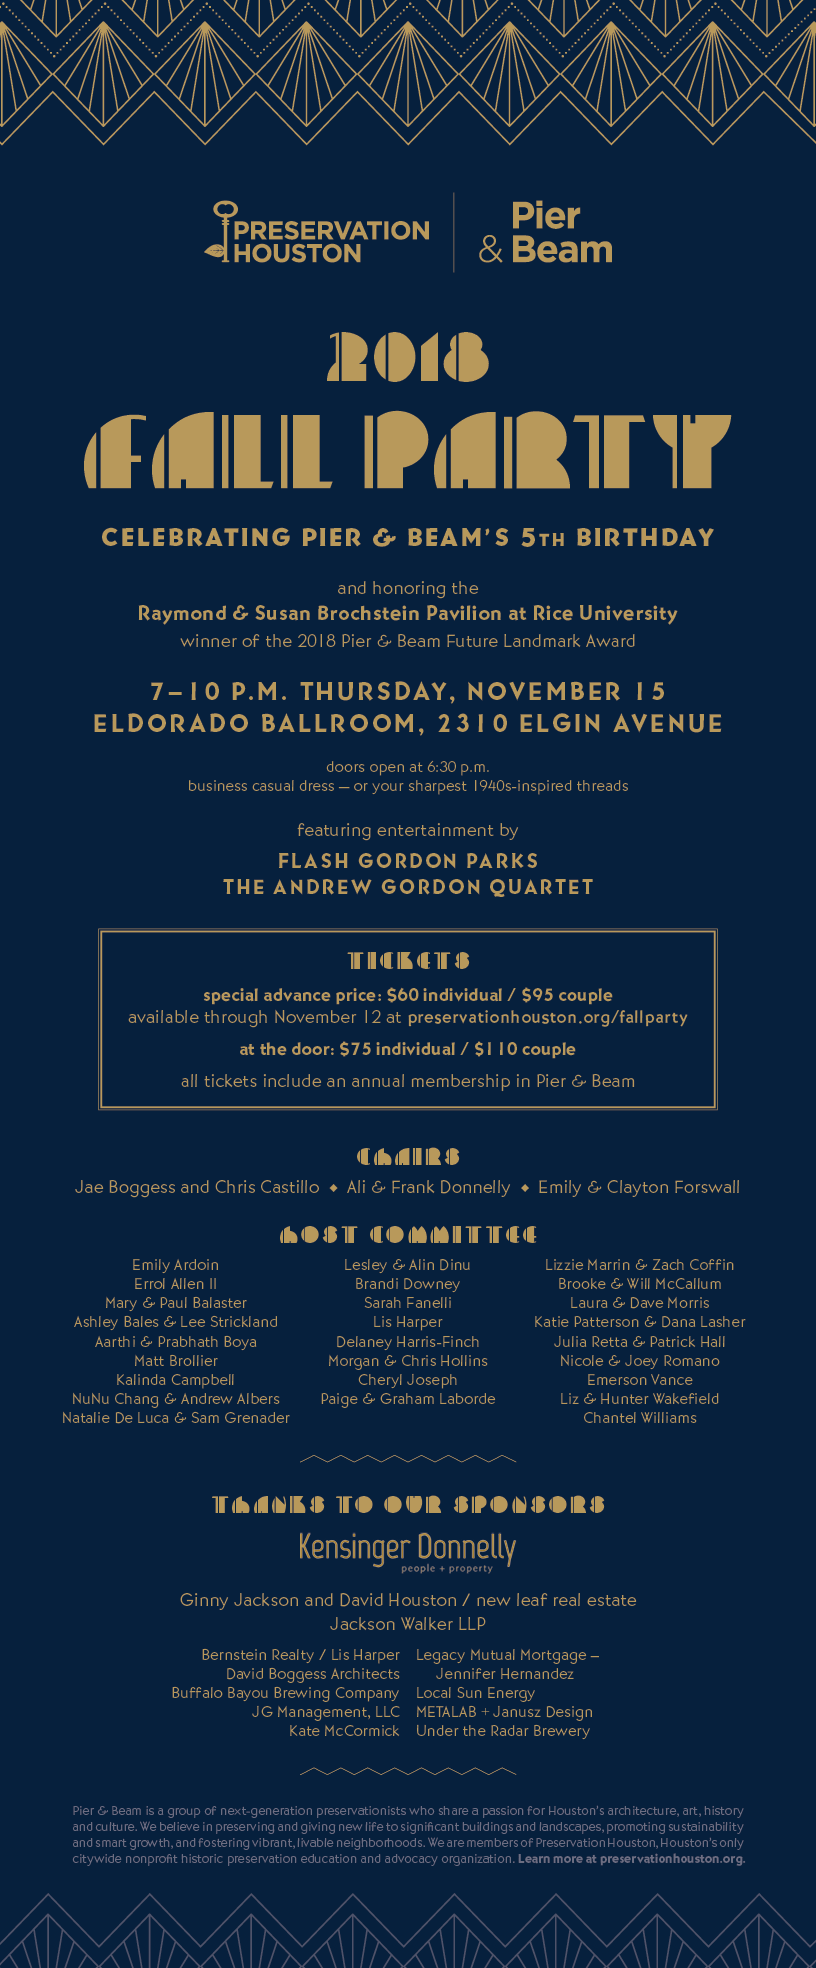 18 P&B Fall Party invitation-1022.png